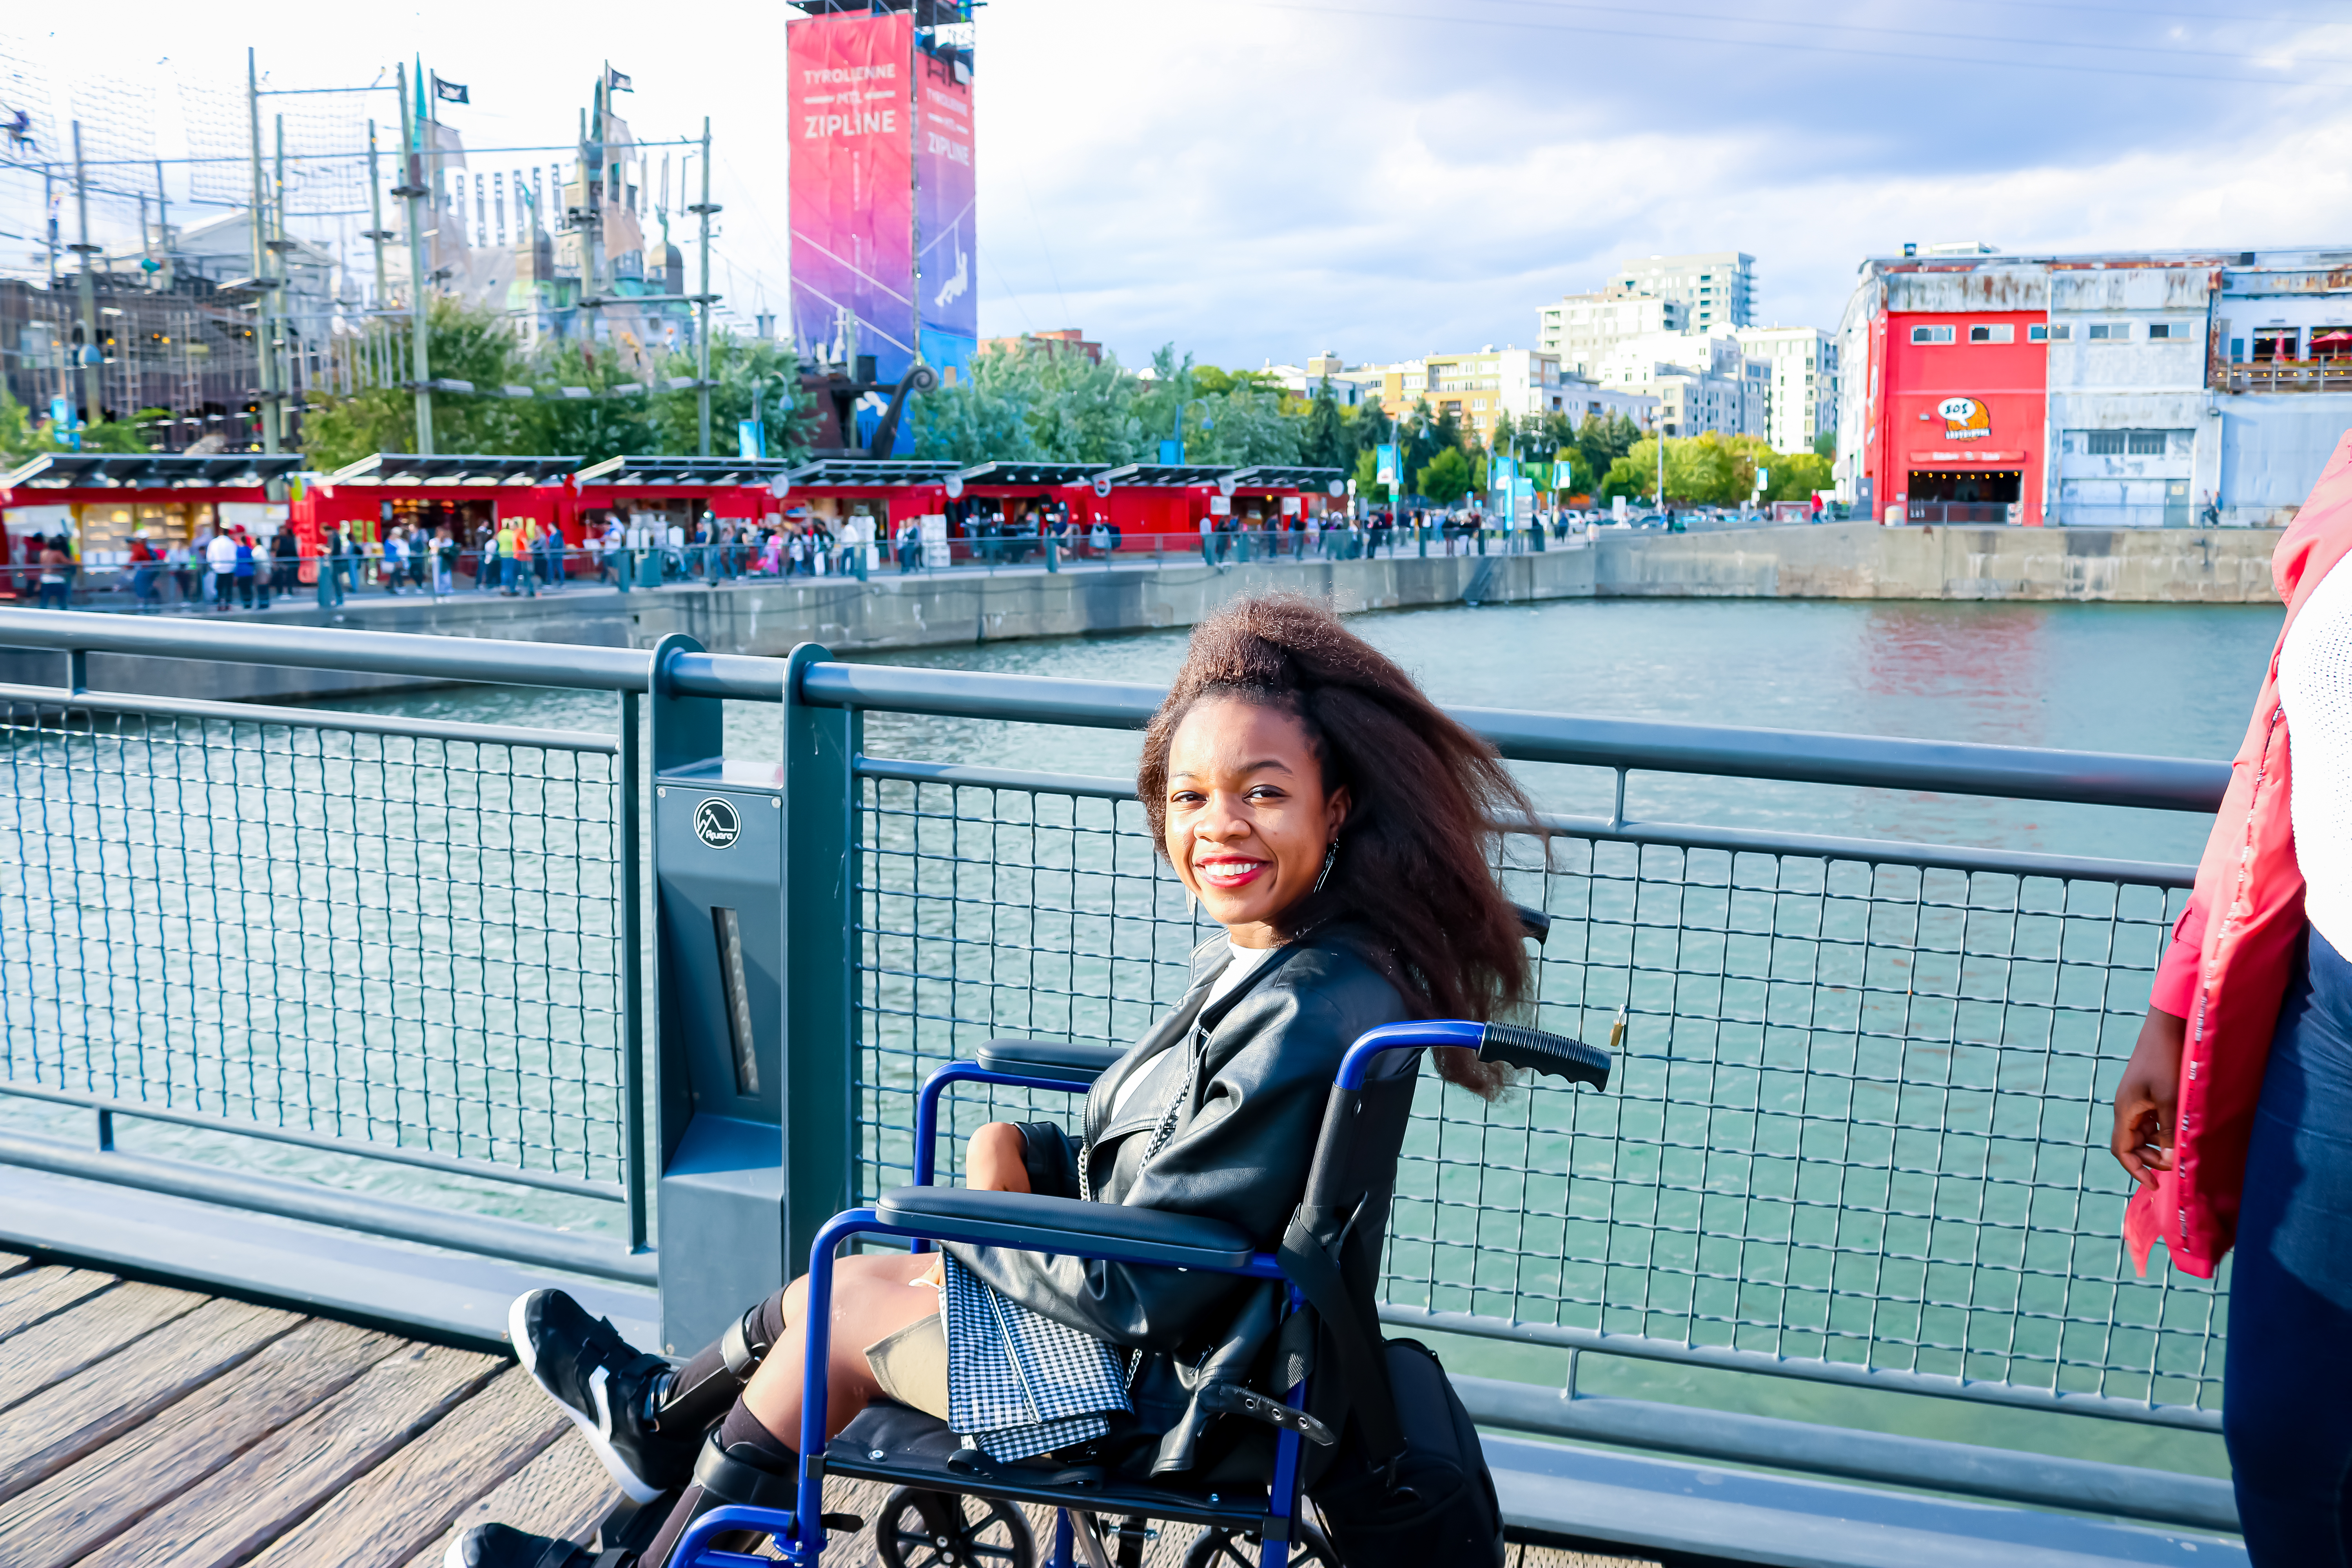 Rachy in Montréal on wheelchair